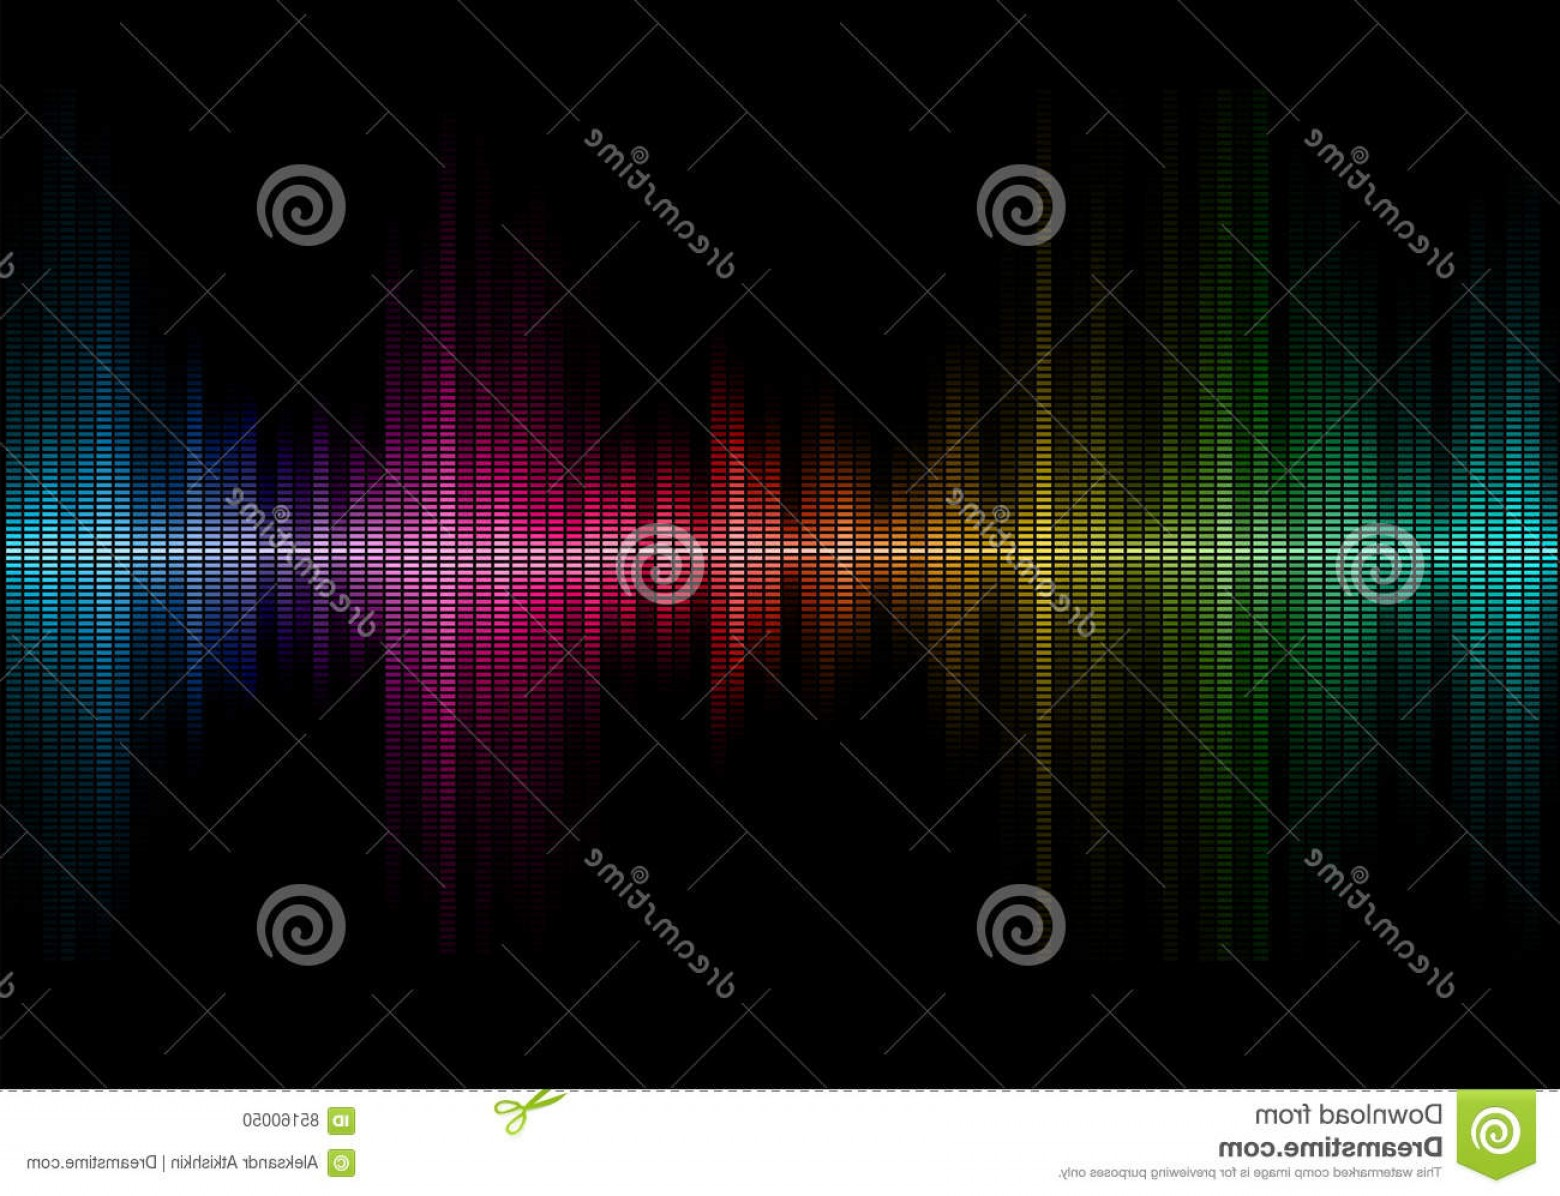 Rock Band Equalizer Vector: Stock Illustration Music Sound Waves Disco Rainbow Colored Equalizer Waveform Design Vector Illustration Musical Pulse Image